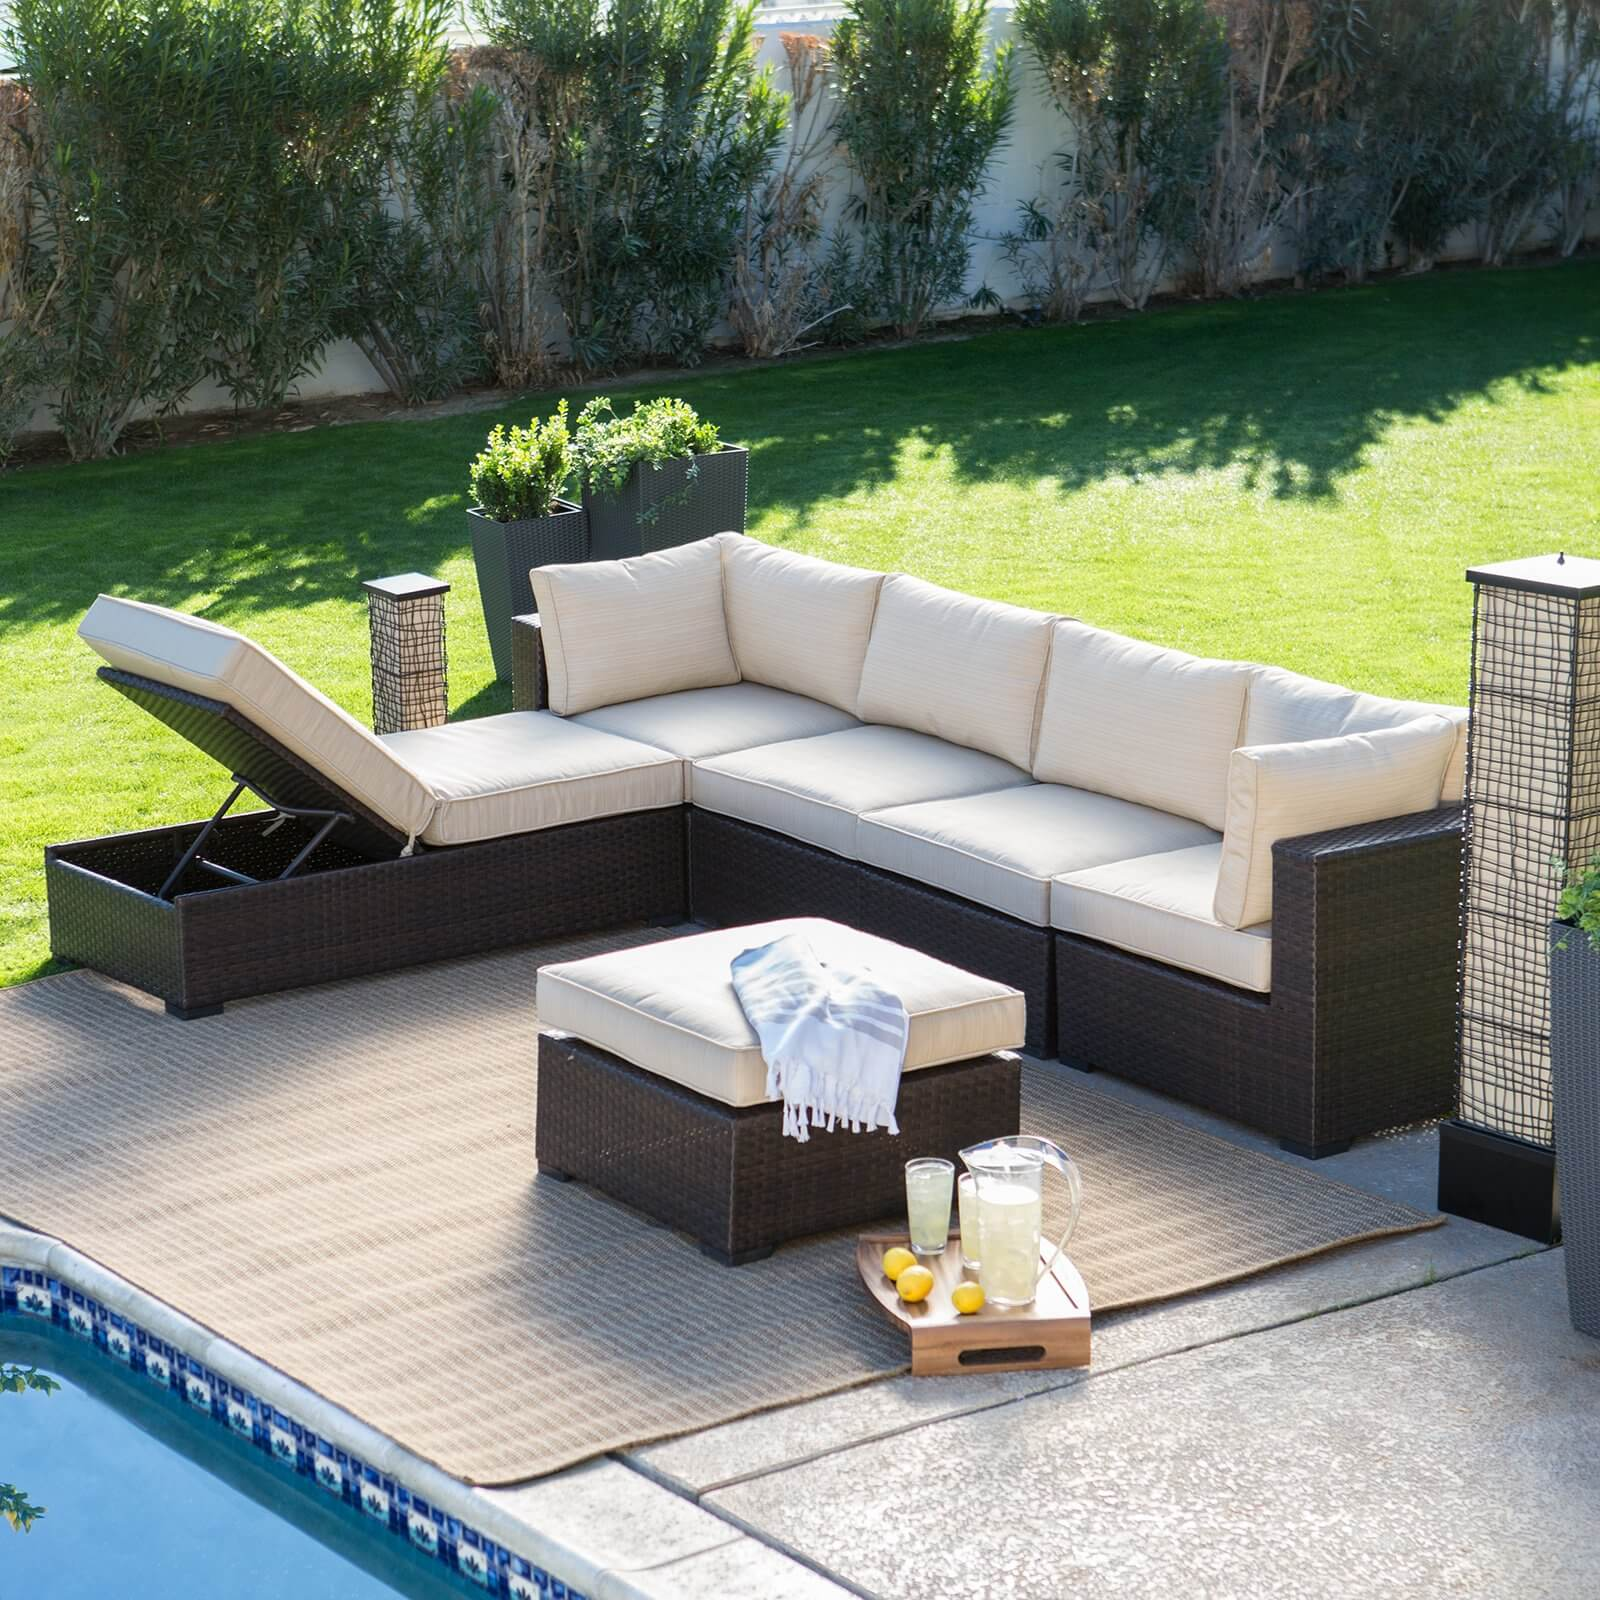 outdoor sofa sectional set good outdoor furniture sectional sofa 39 on living room ideas thesofa